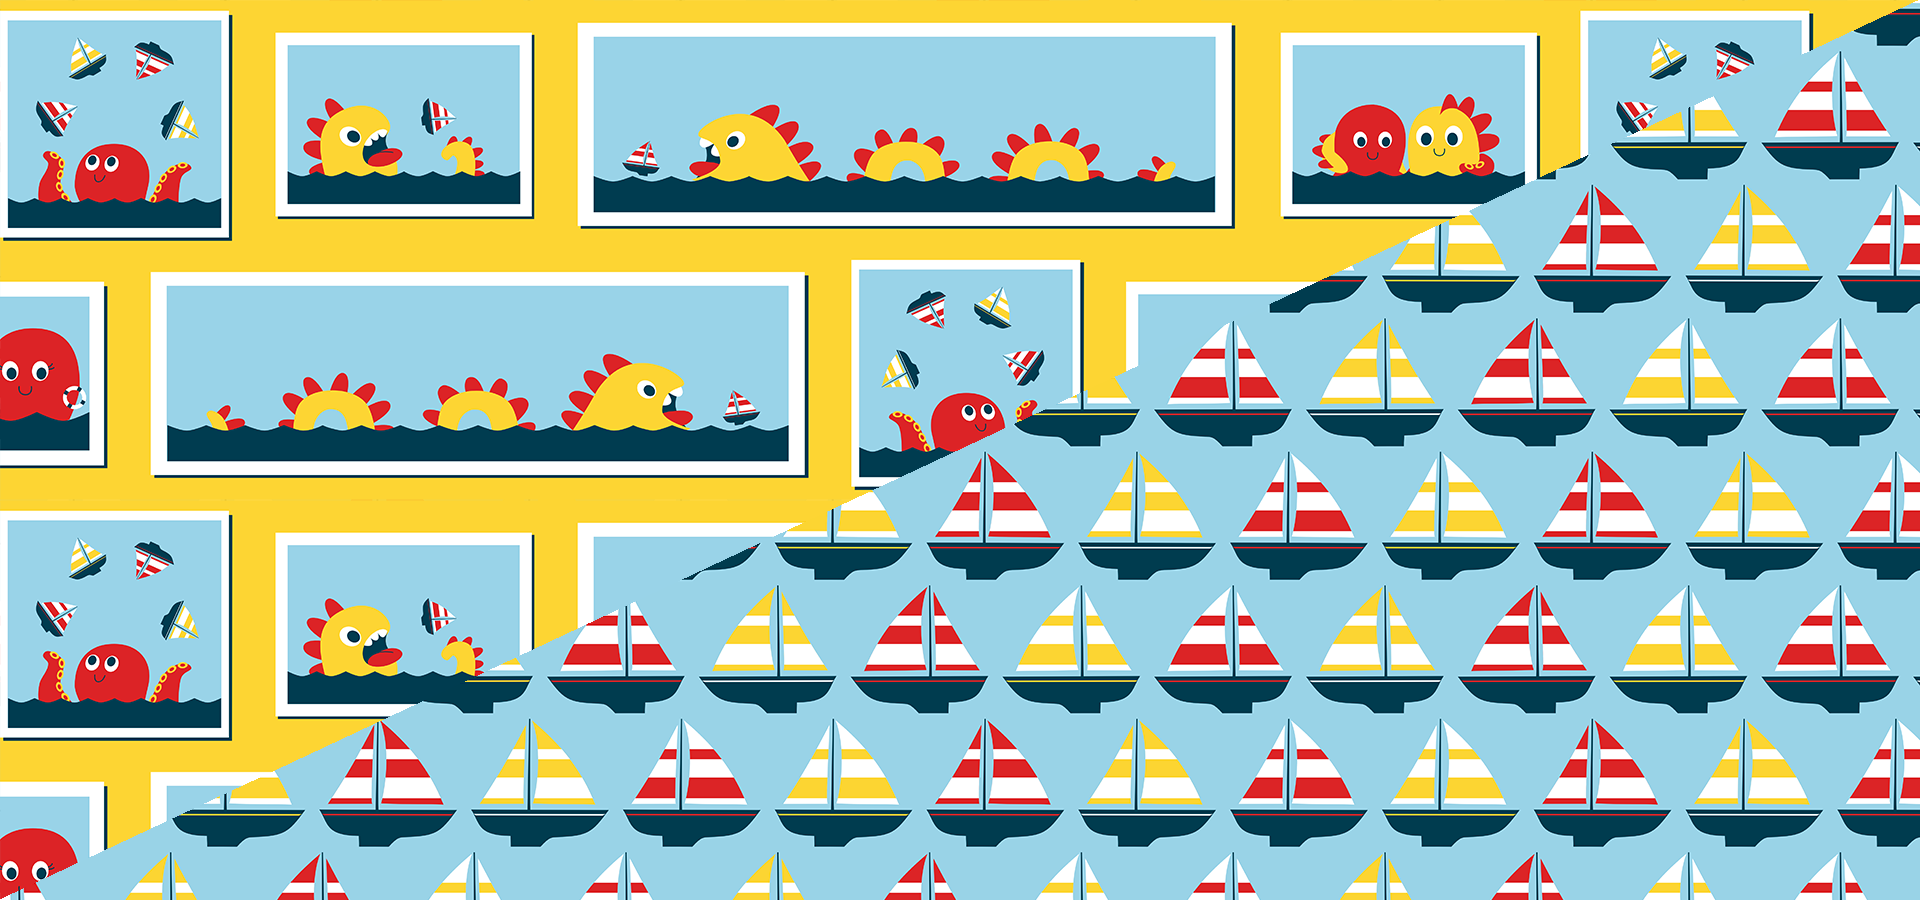 sailboats and monsters pattern collection